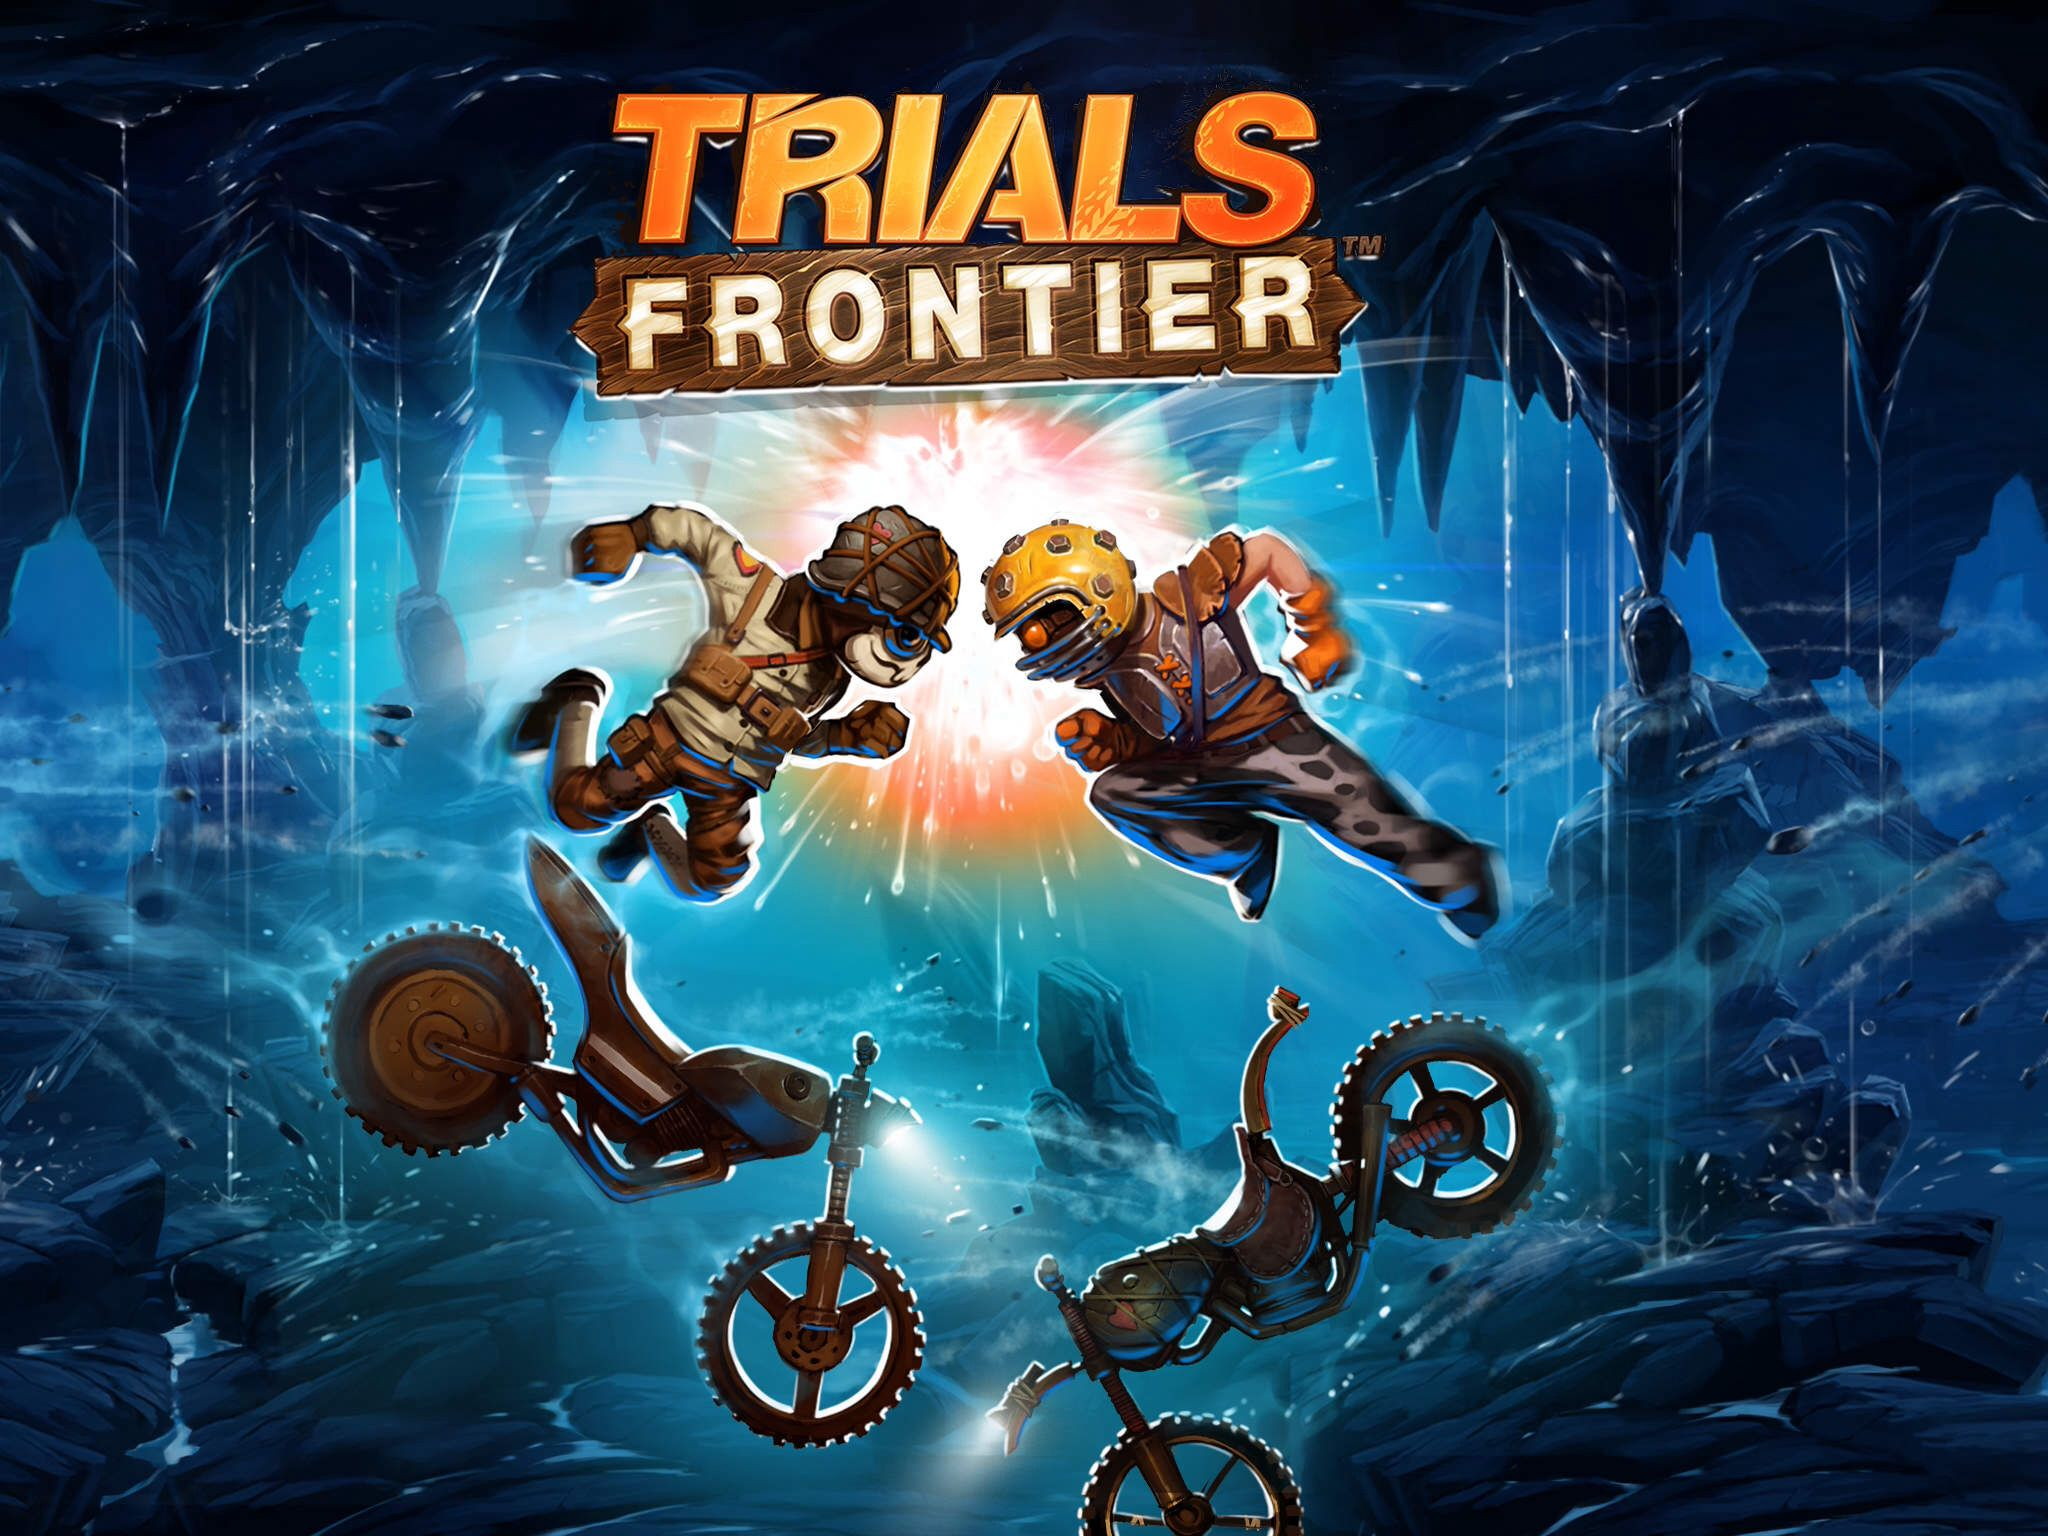 Trials frontier game logo Games, Game logo, Android